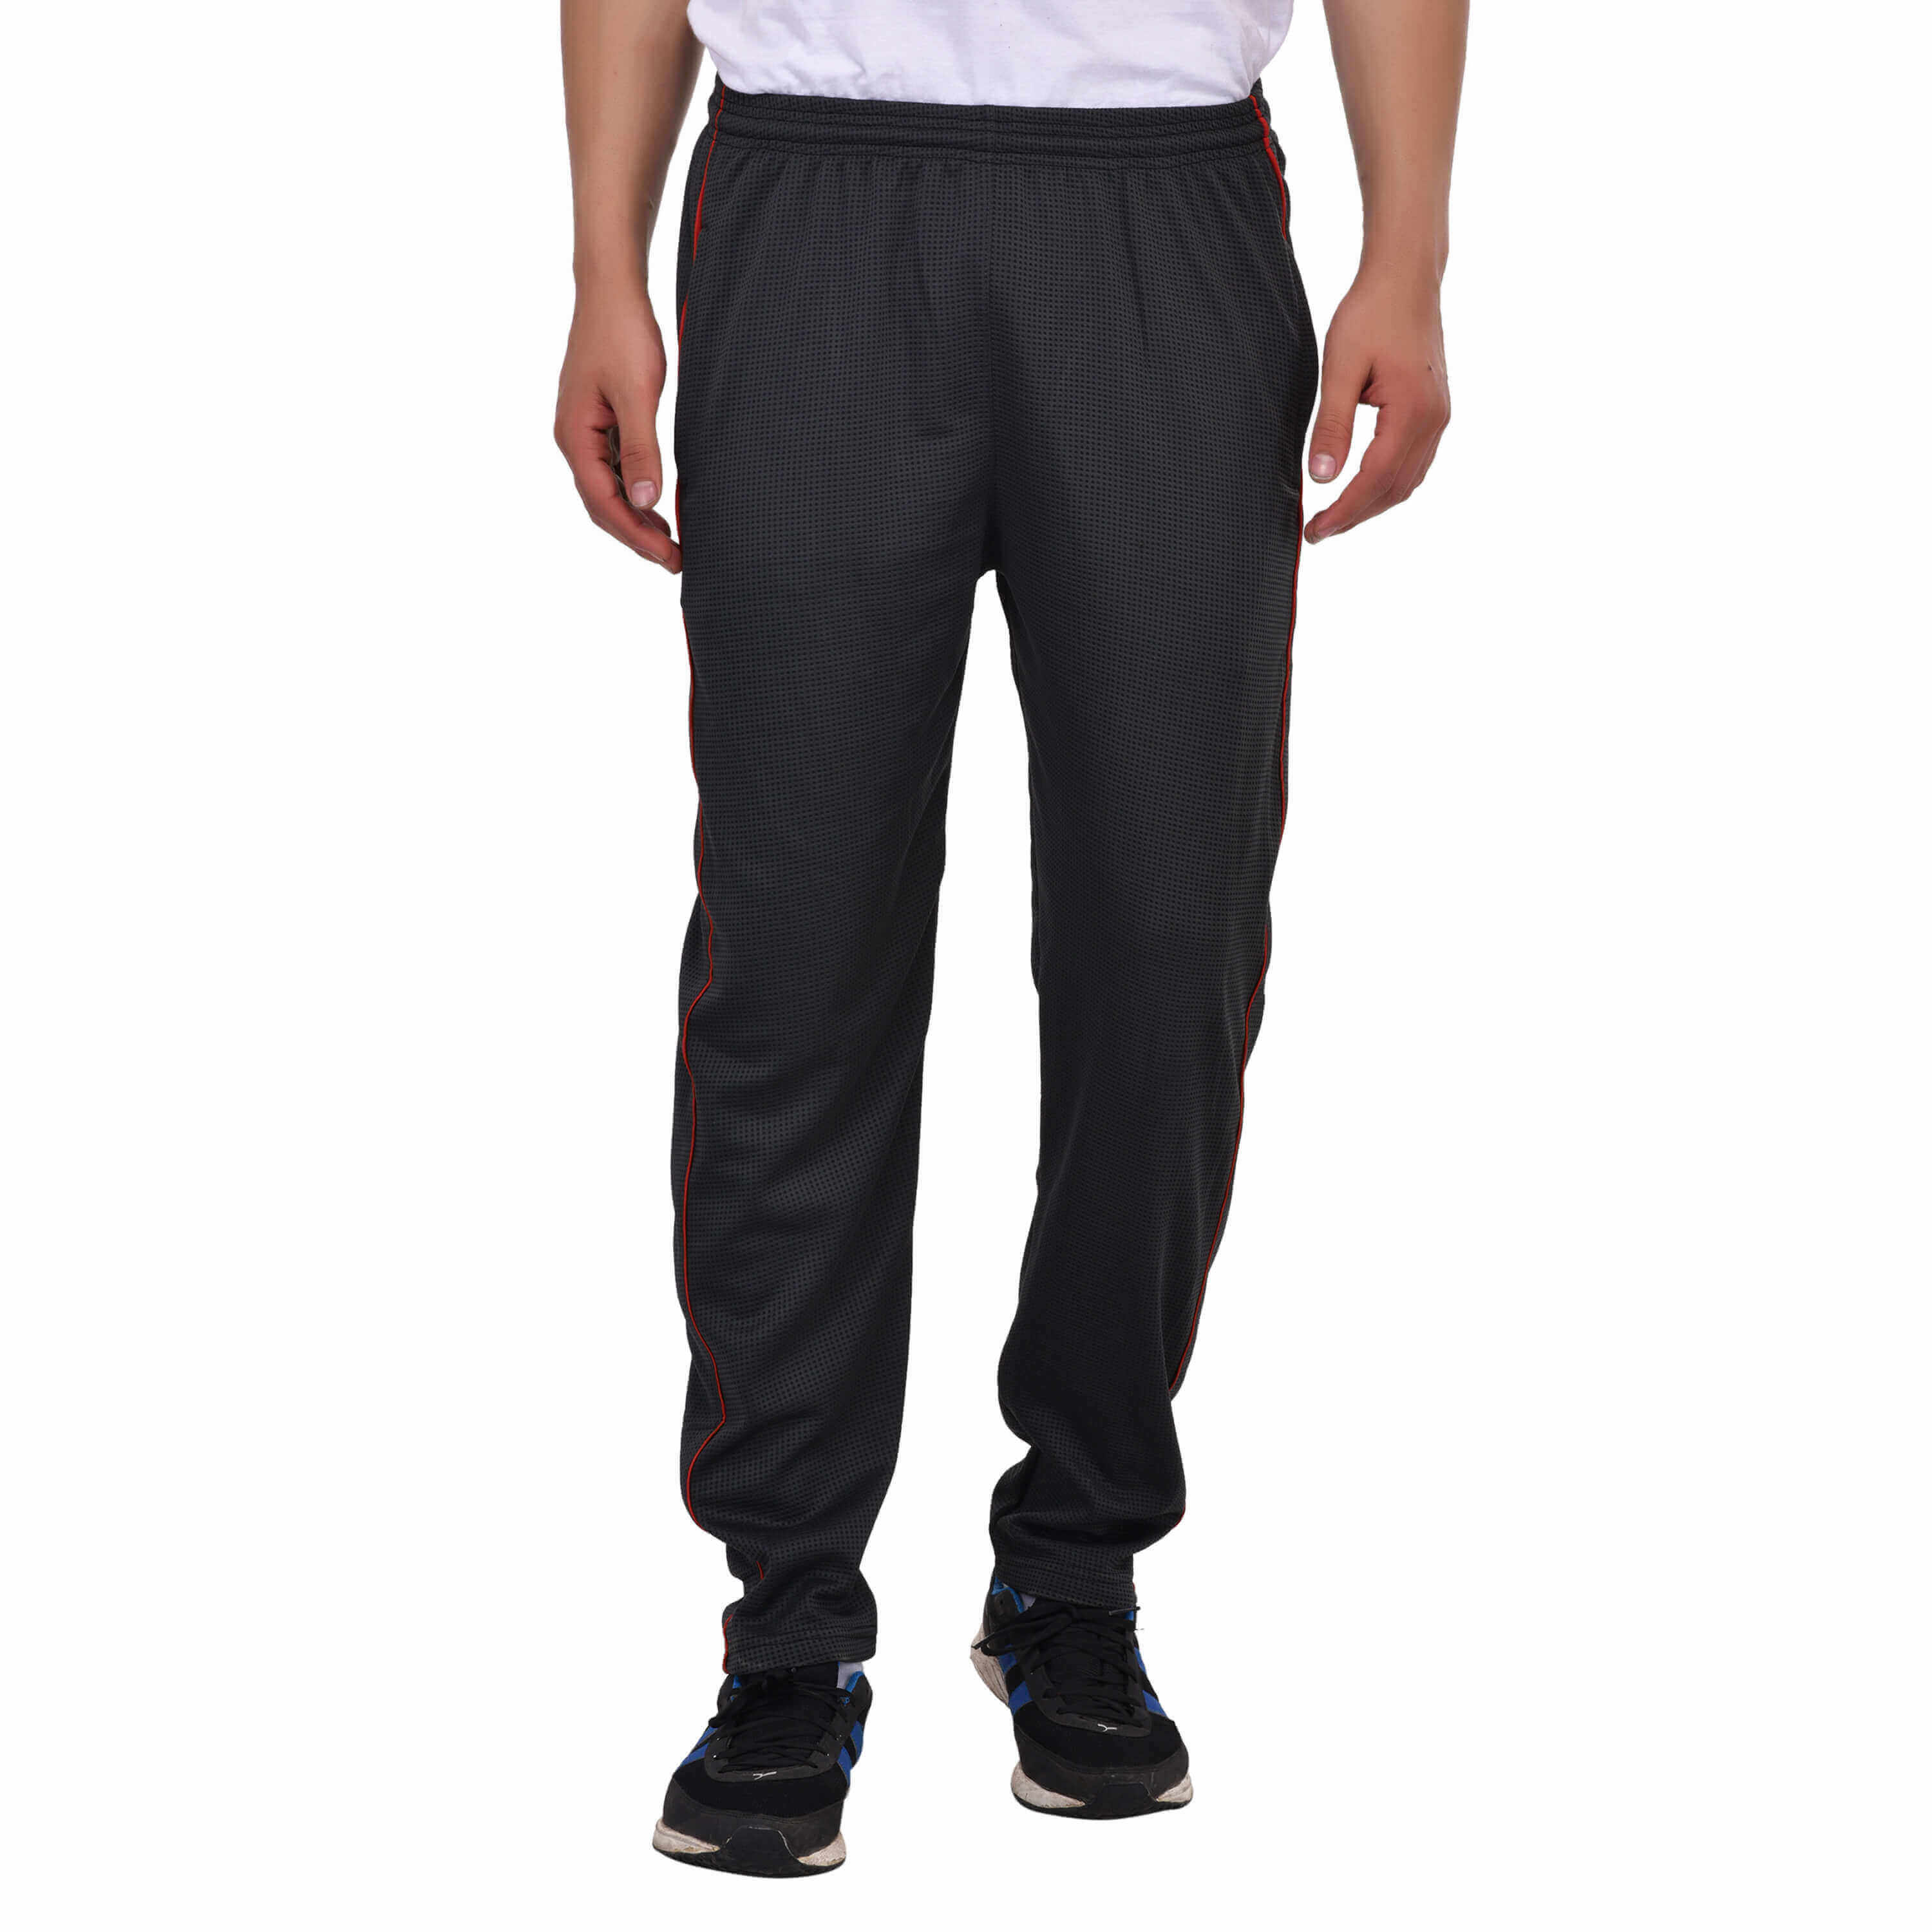 Gym Trousers Manufacturers in Bolivia